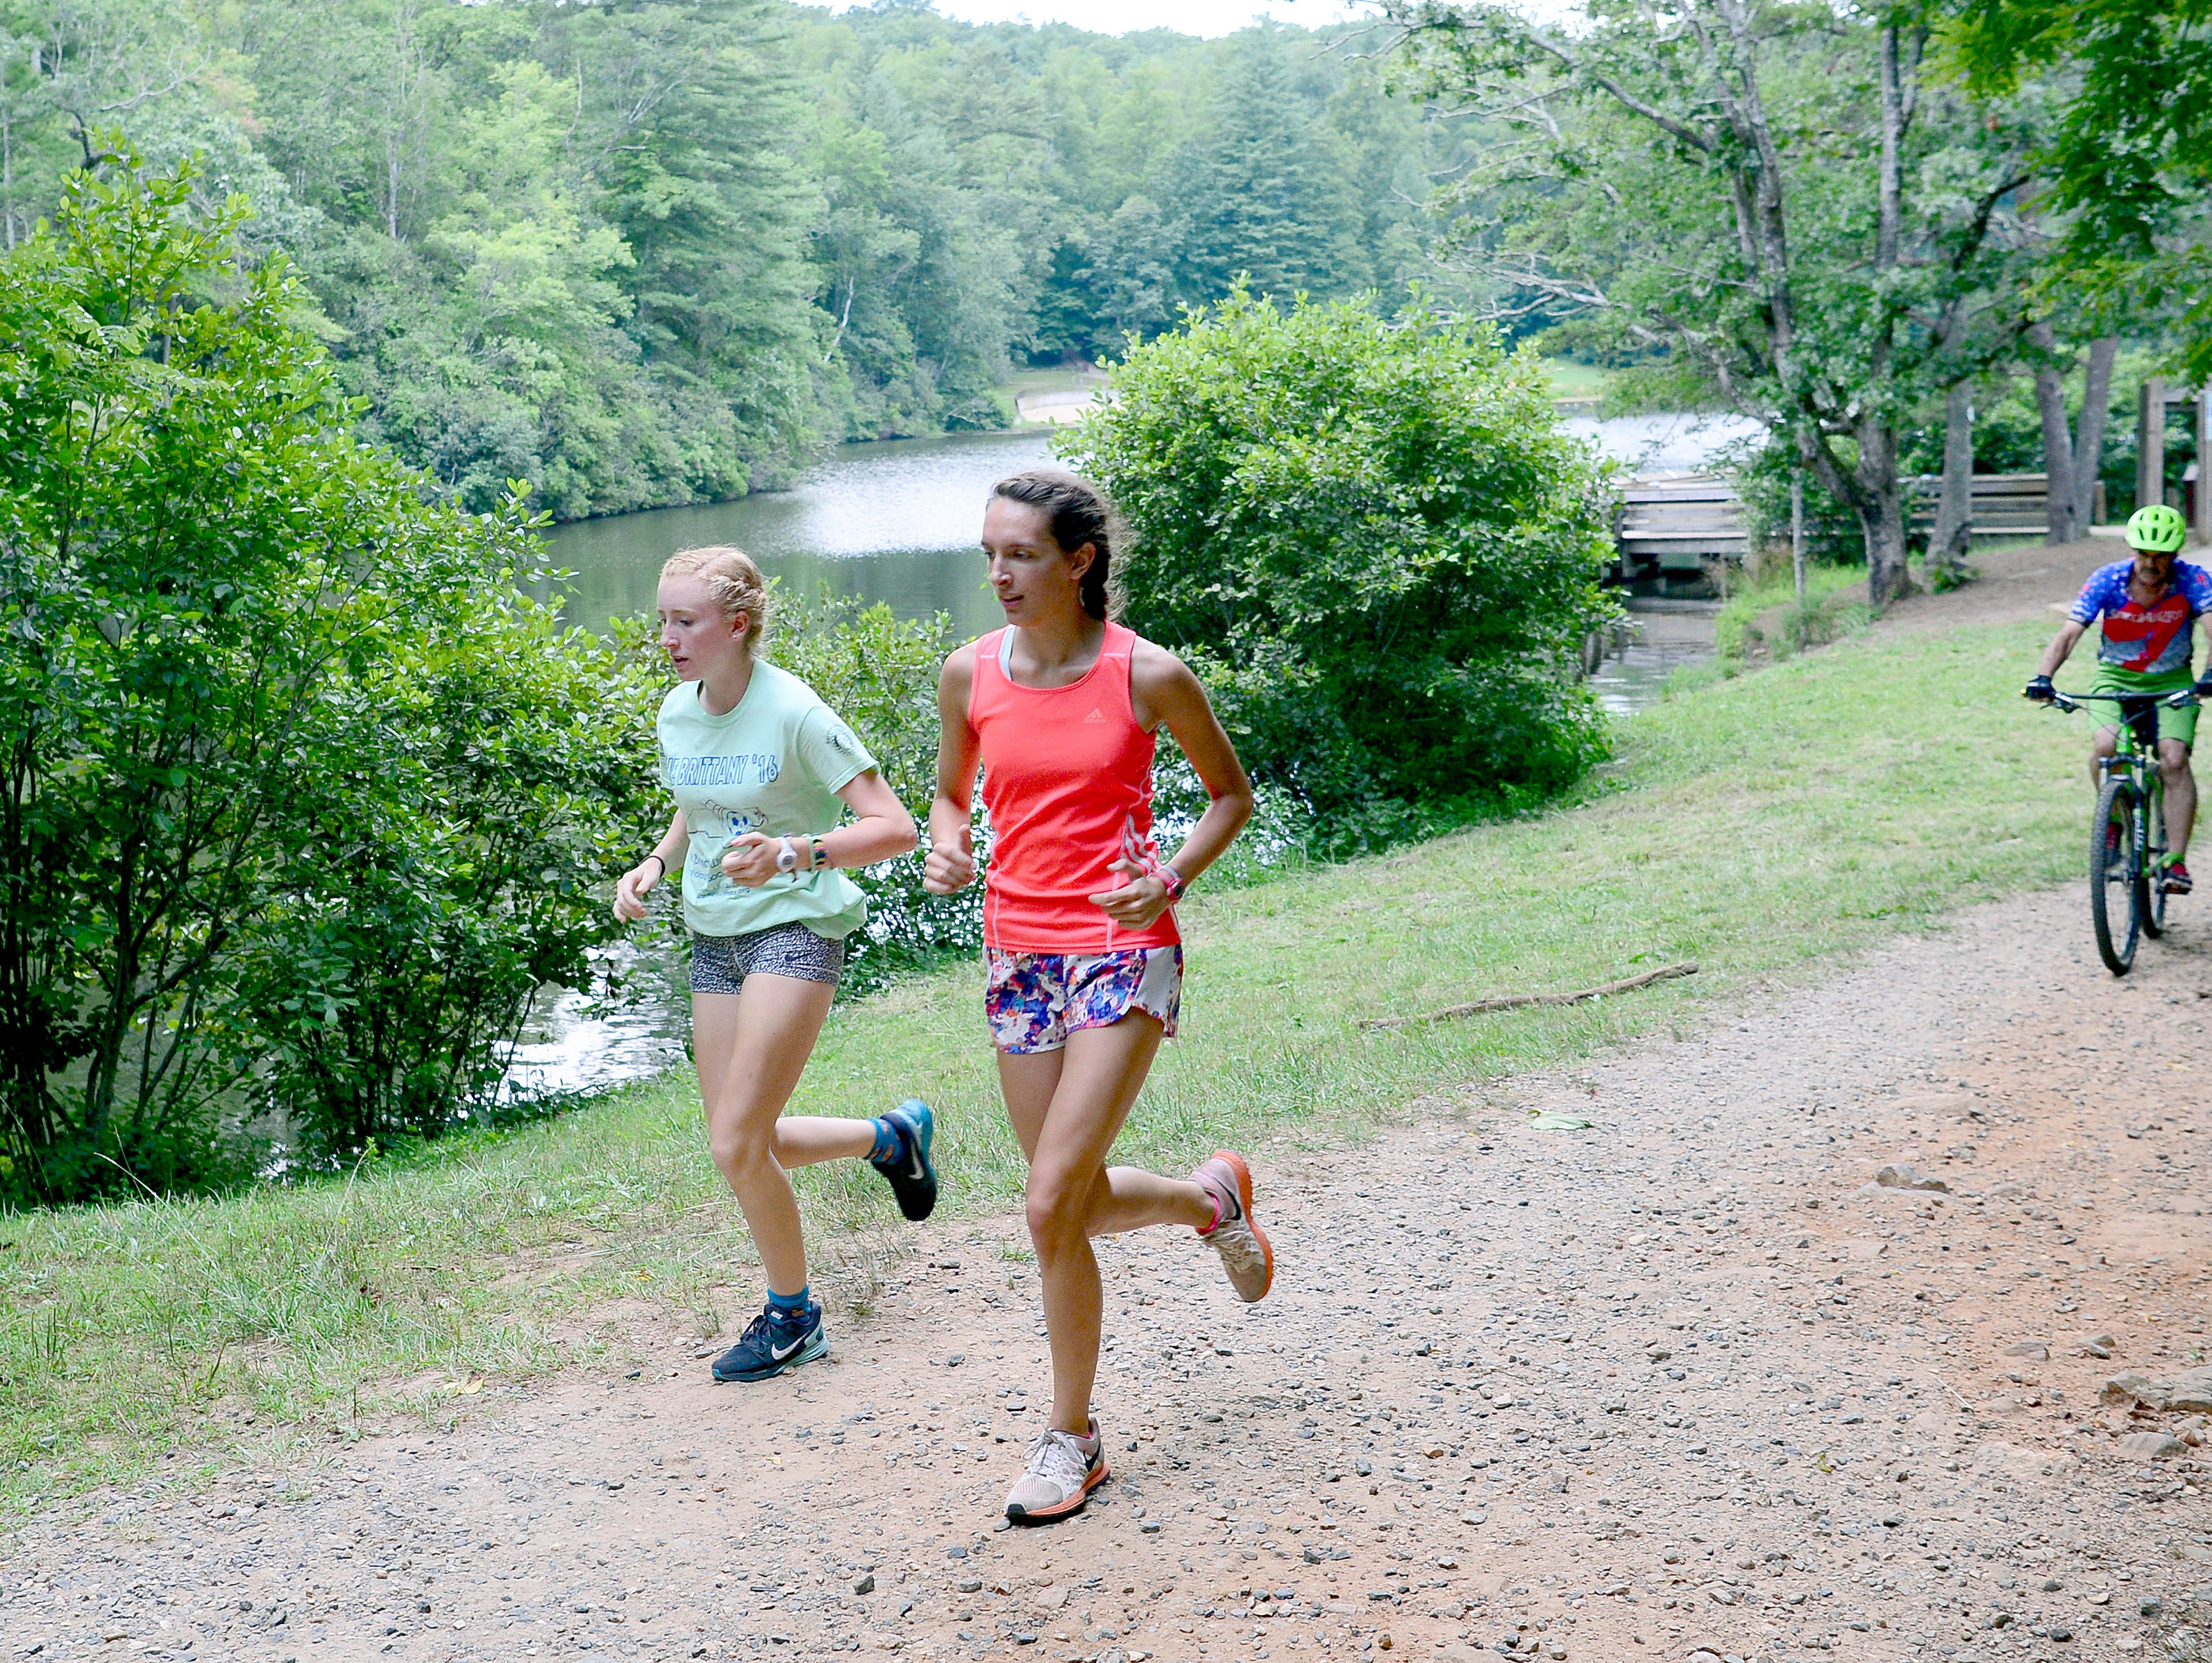 Roberson cross country runners Sarah Lewis, left, and Elise Wright, right, lead the pack as the team does a workout run at the North Carolina Arboretum and Lake Powhatan on Thursday, Aug. 4, 2016.